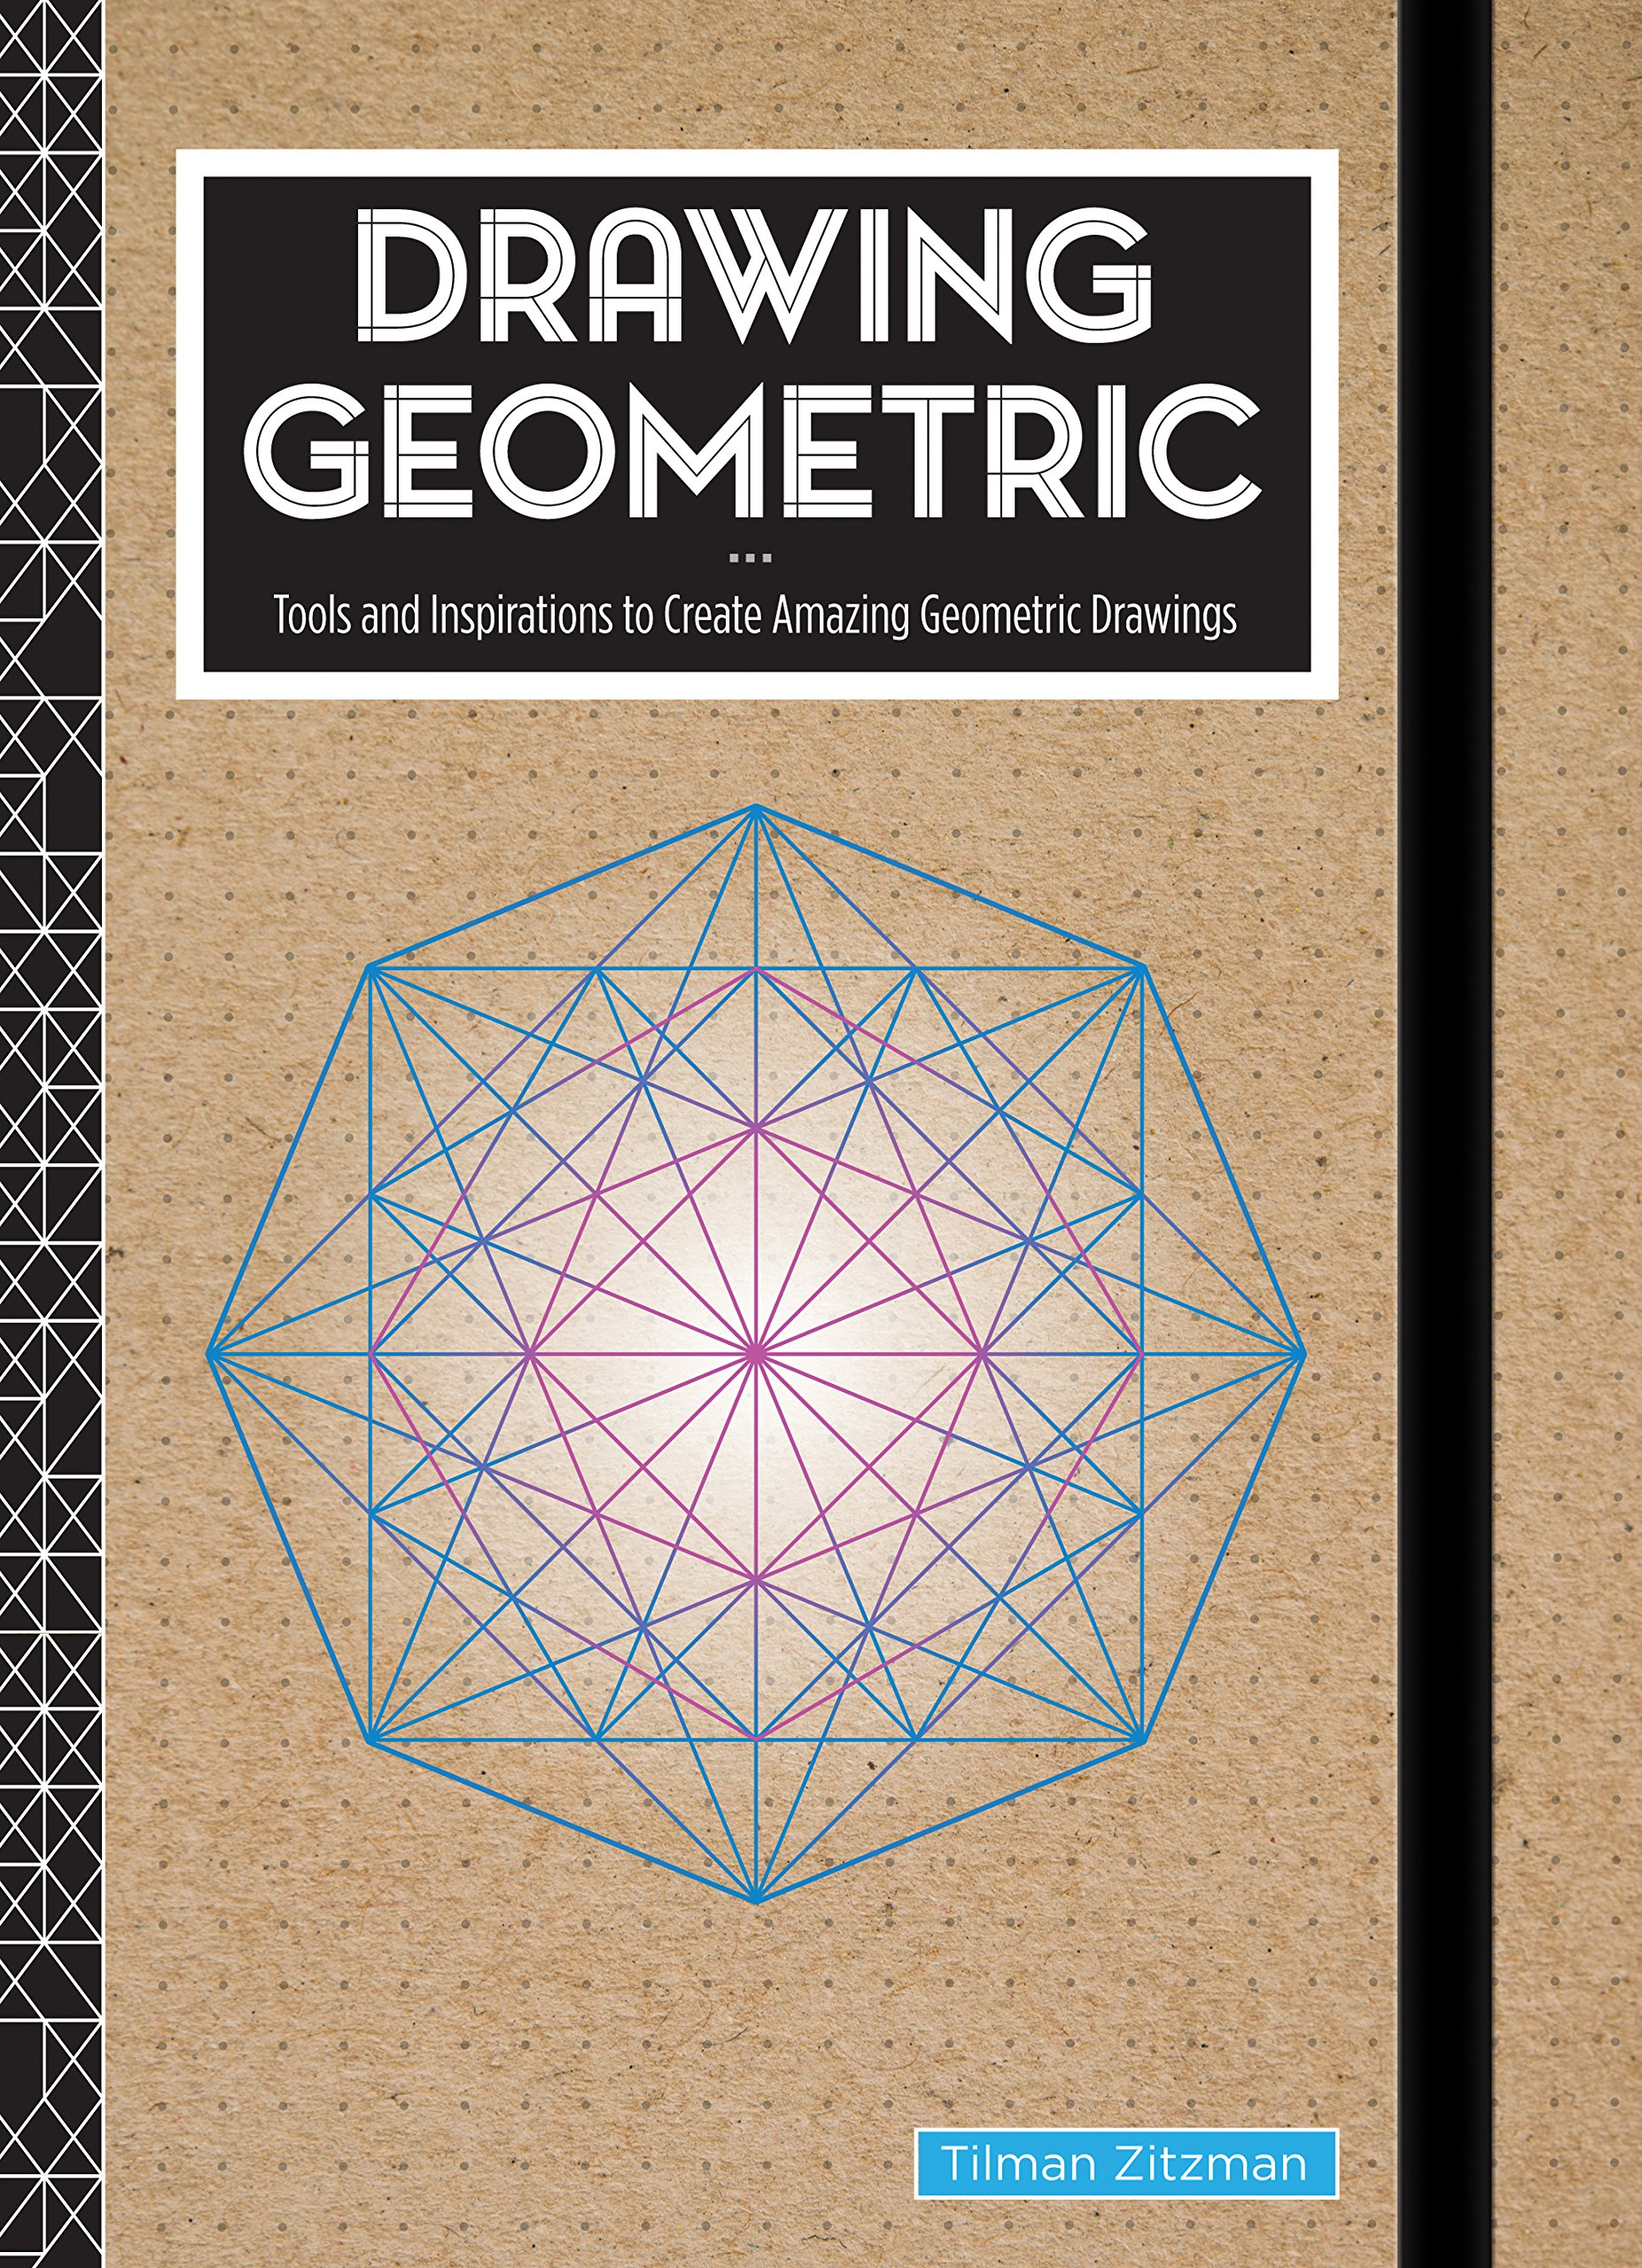 Drawing Geometric: Tools and Inspirations to Create Amazing Geometric Drawings - Includes: Sketchbook, Geometric Stencils, and More by Rock Point (Image #2)